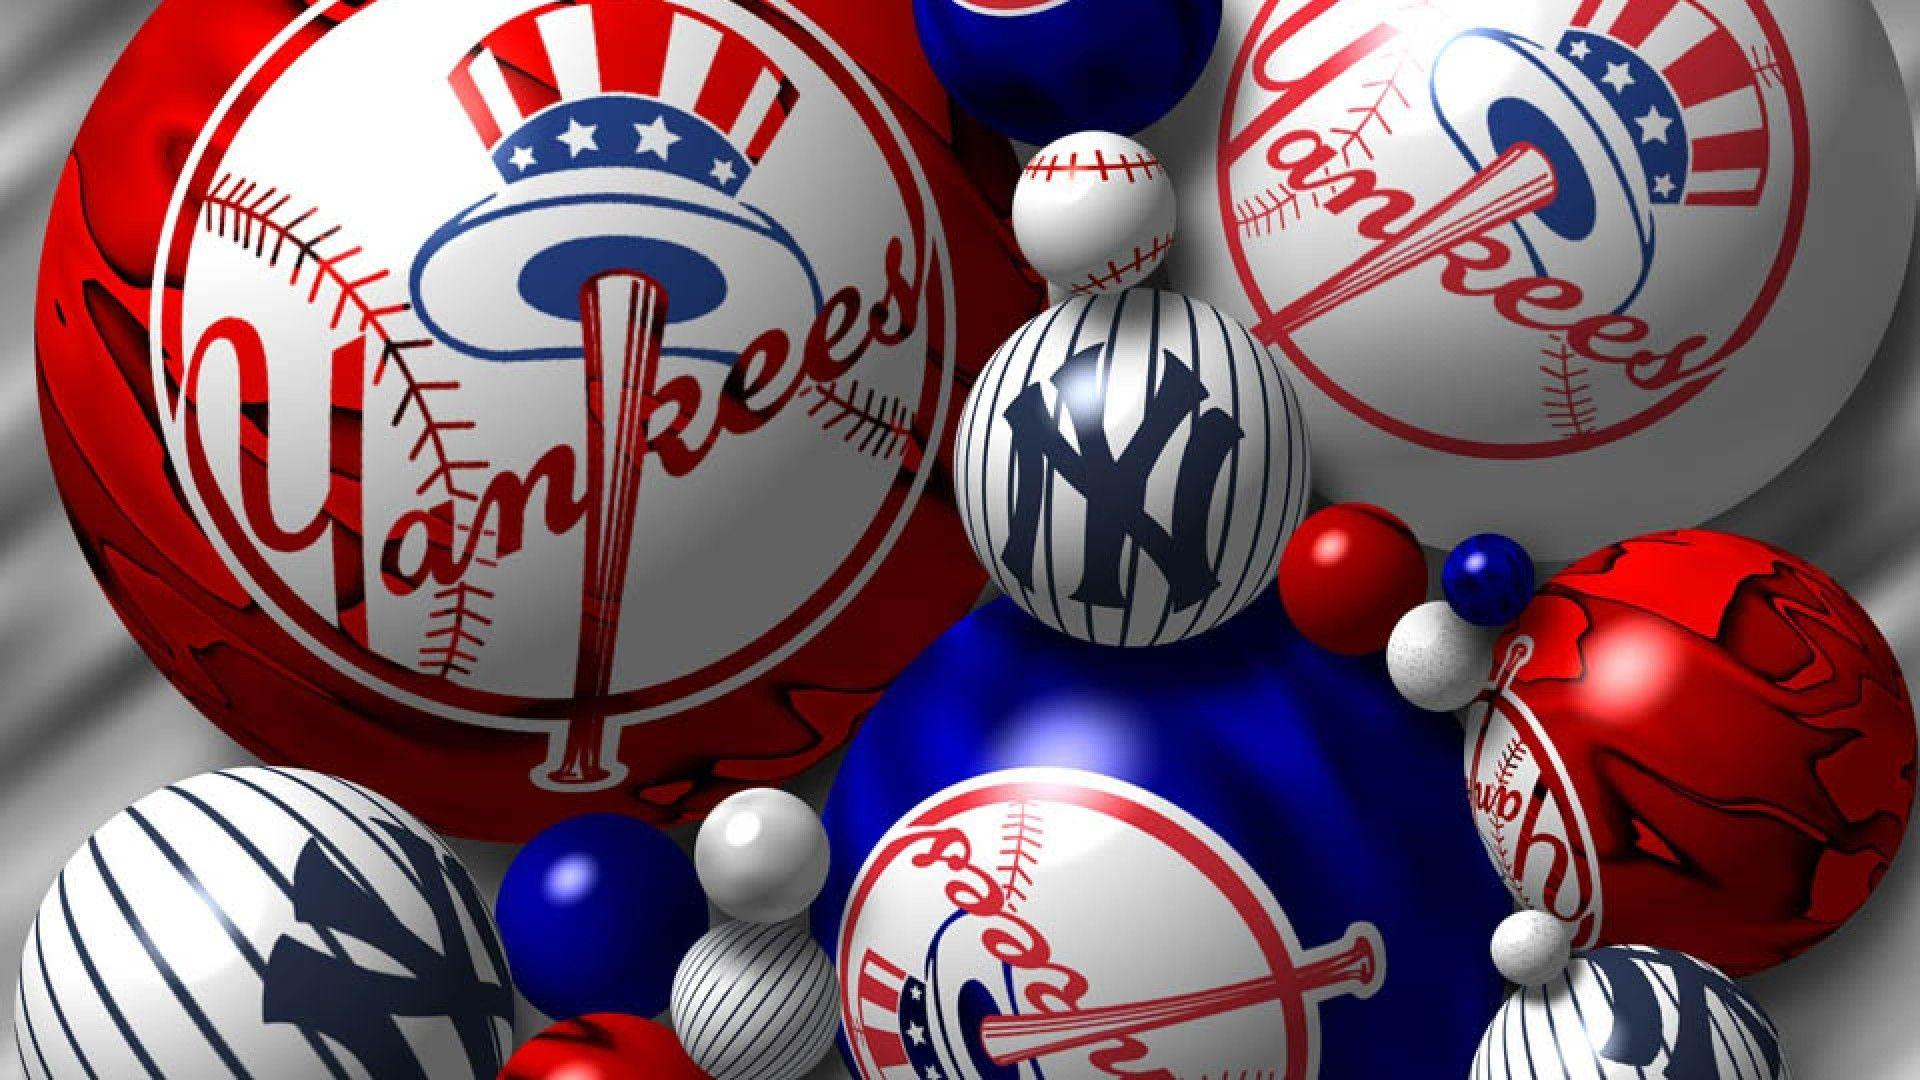 New York Yankees Logo HD Wallpapers of Sports